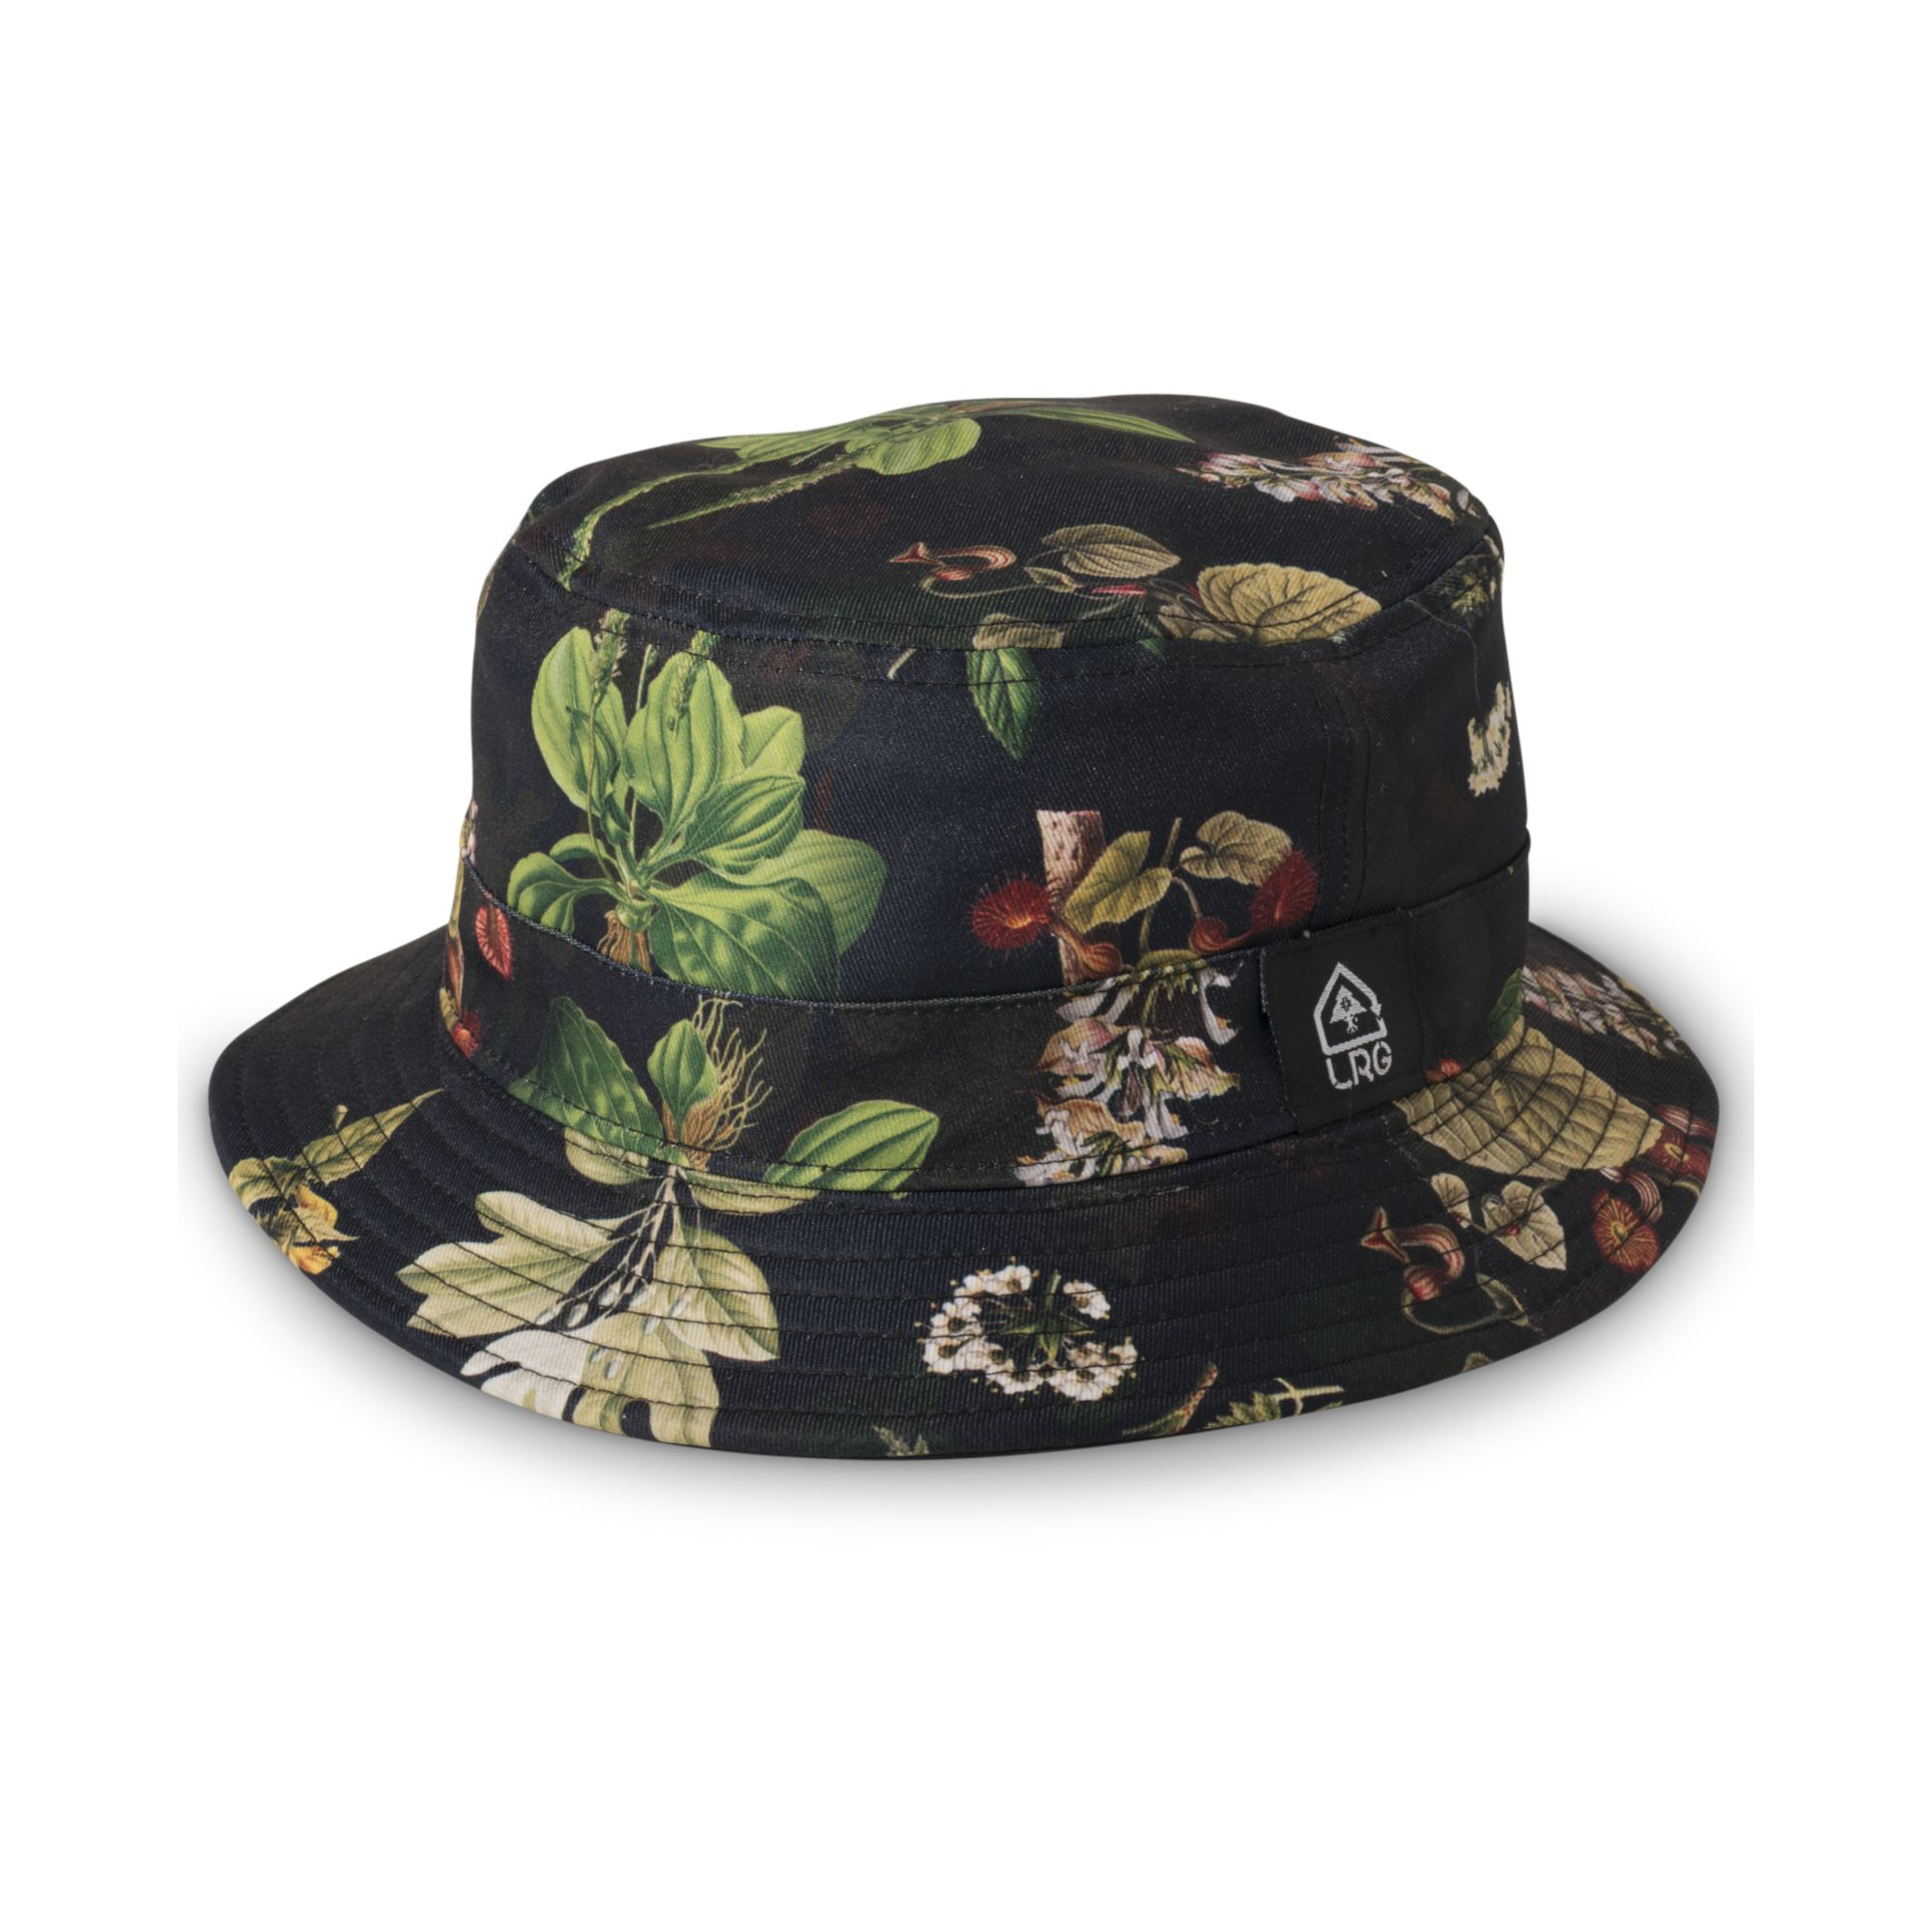 eb52451cd24 Lyst - LRG Floral Print Bucket Hat in Black for Men